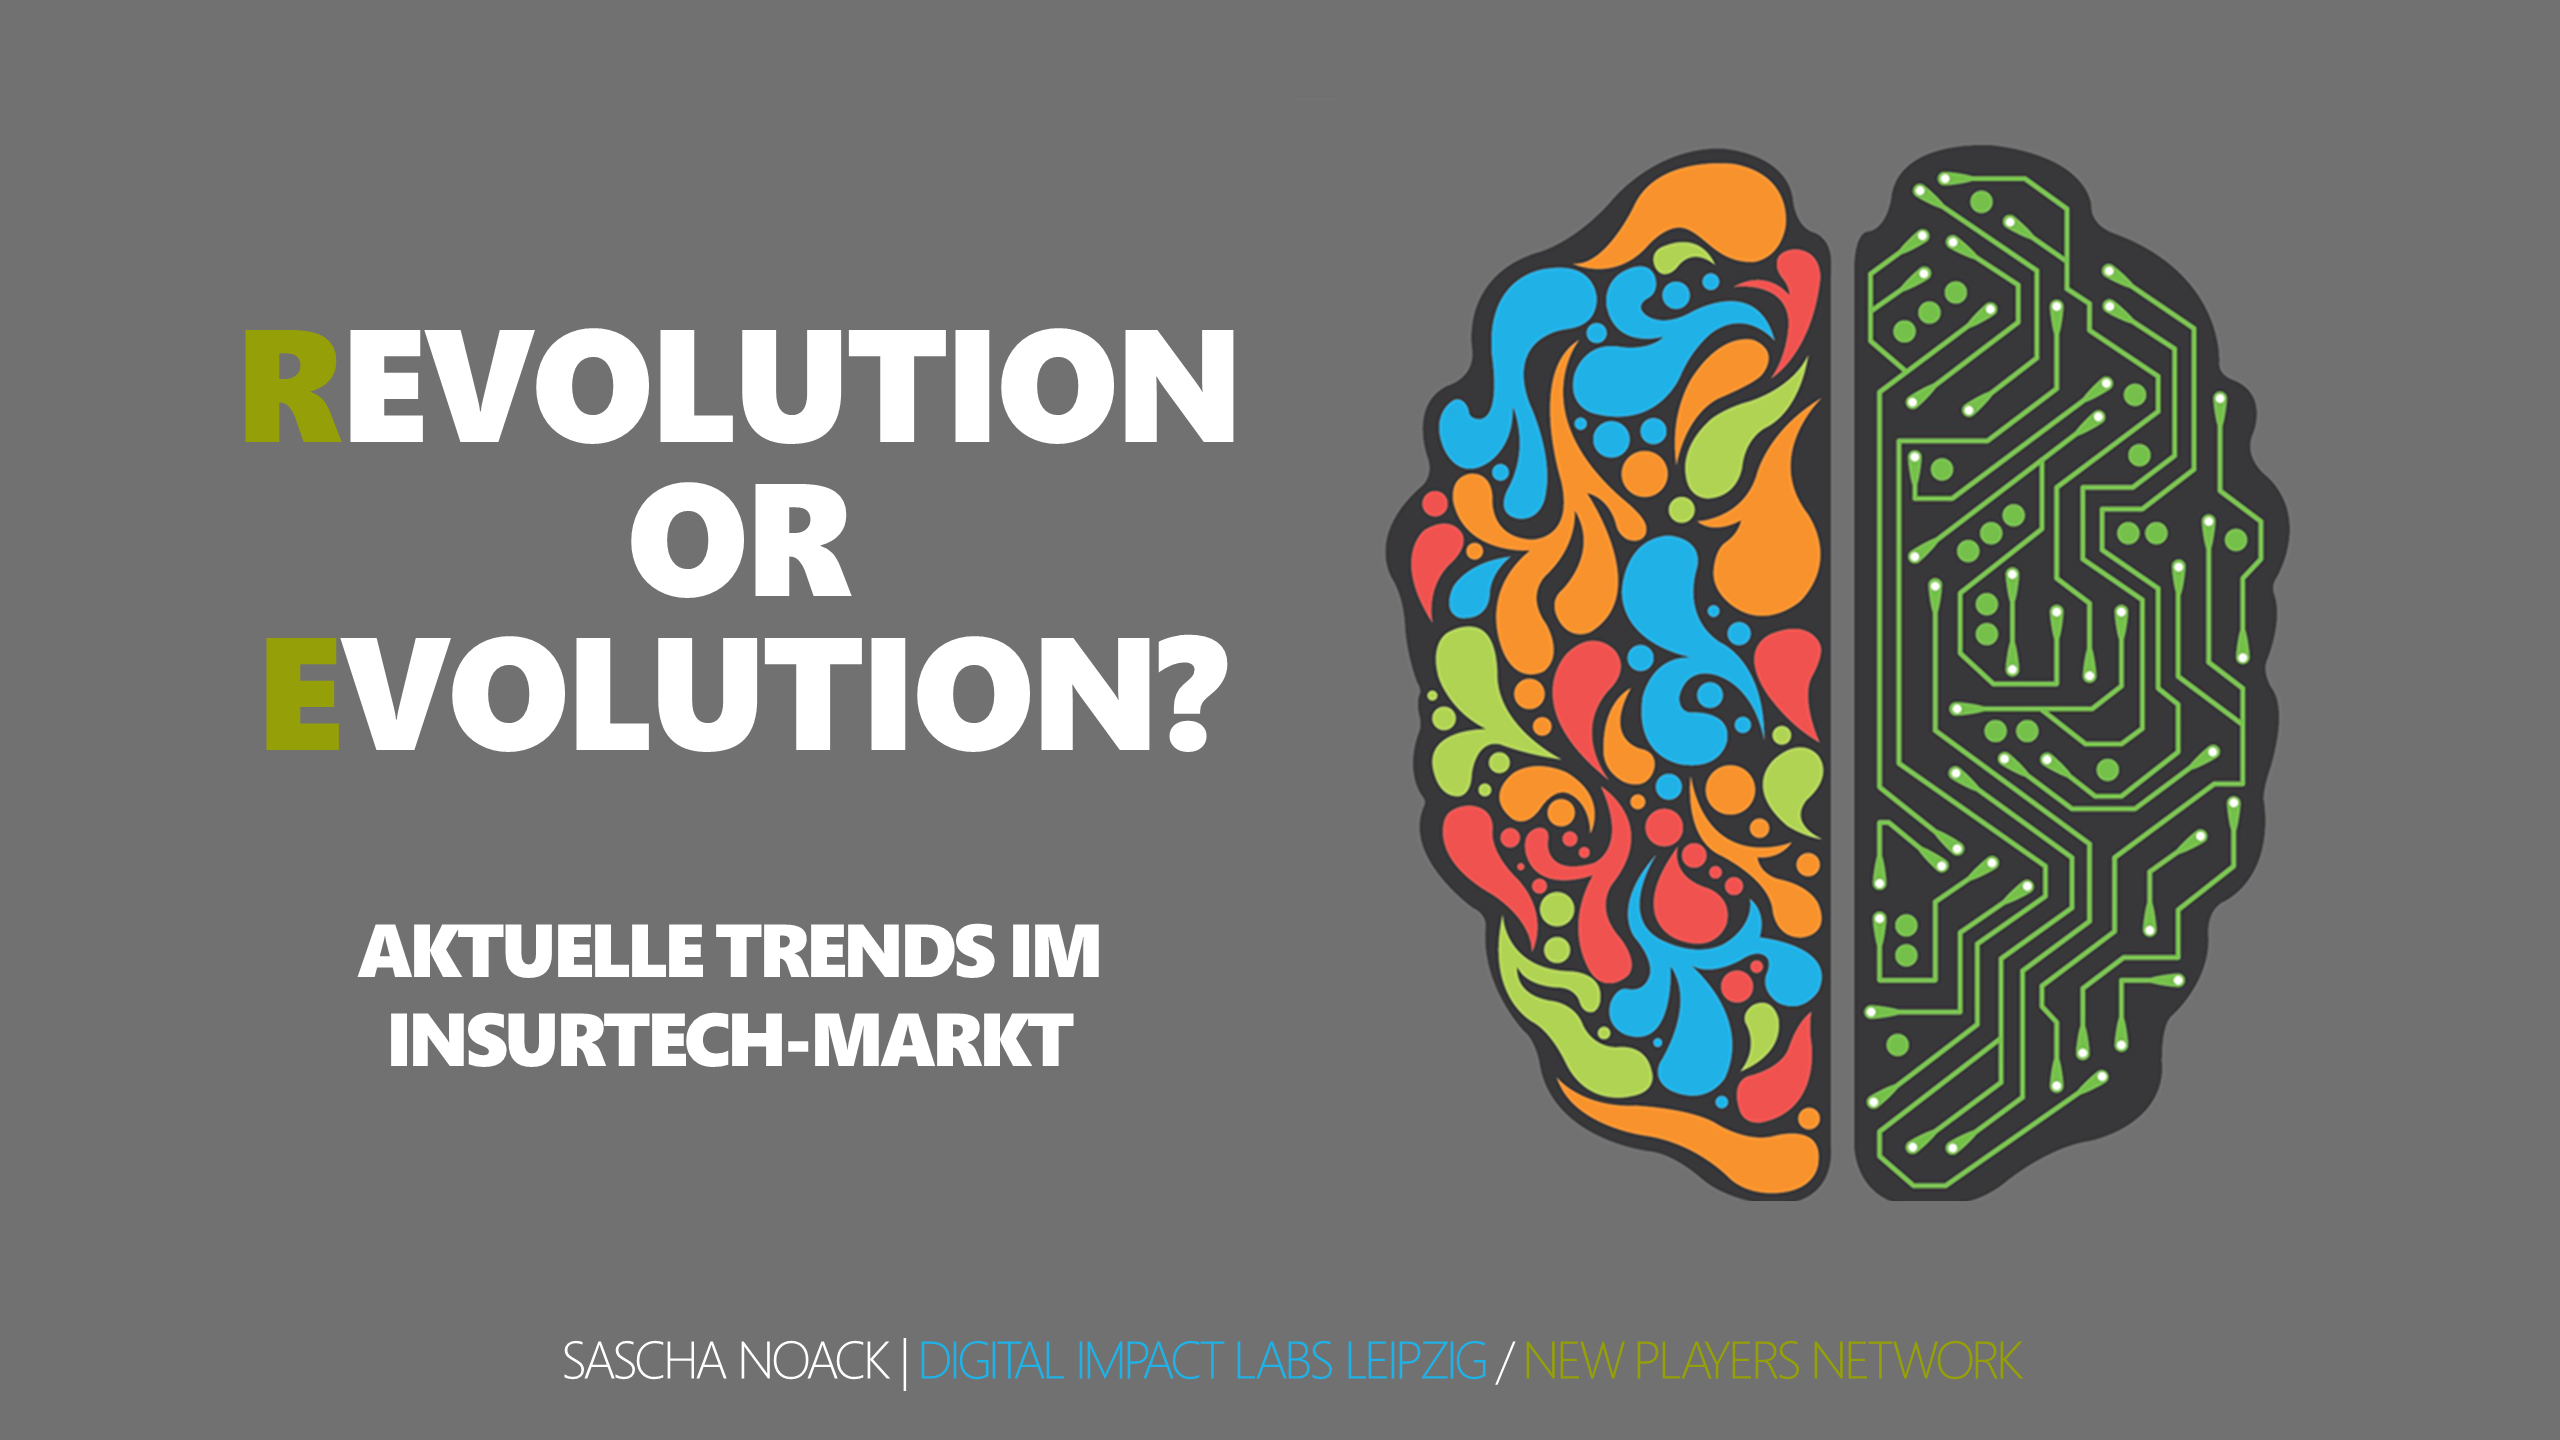 Revolution or Evolution? Aktuelle Trends im InsurTech-Markt